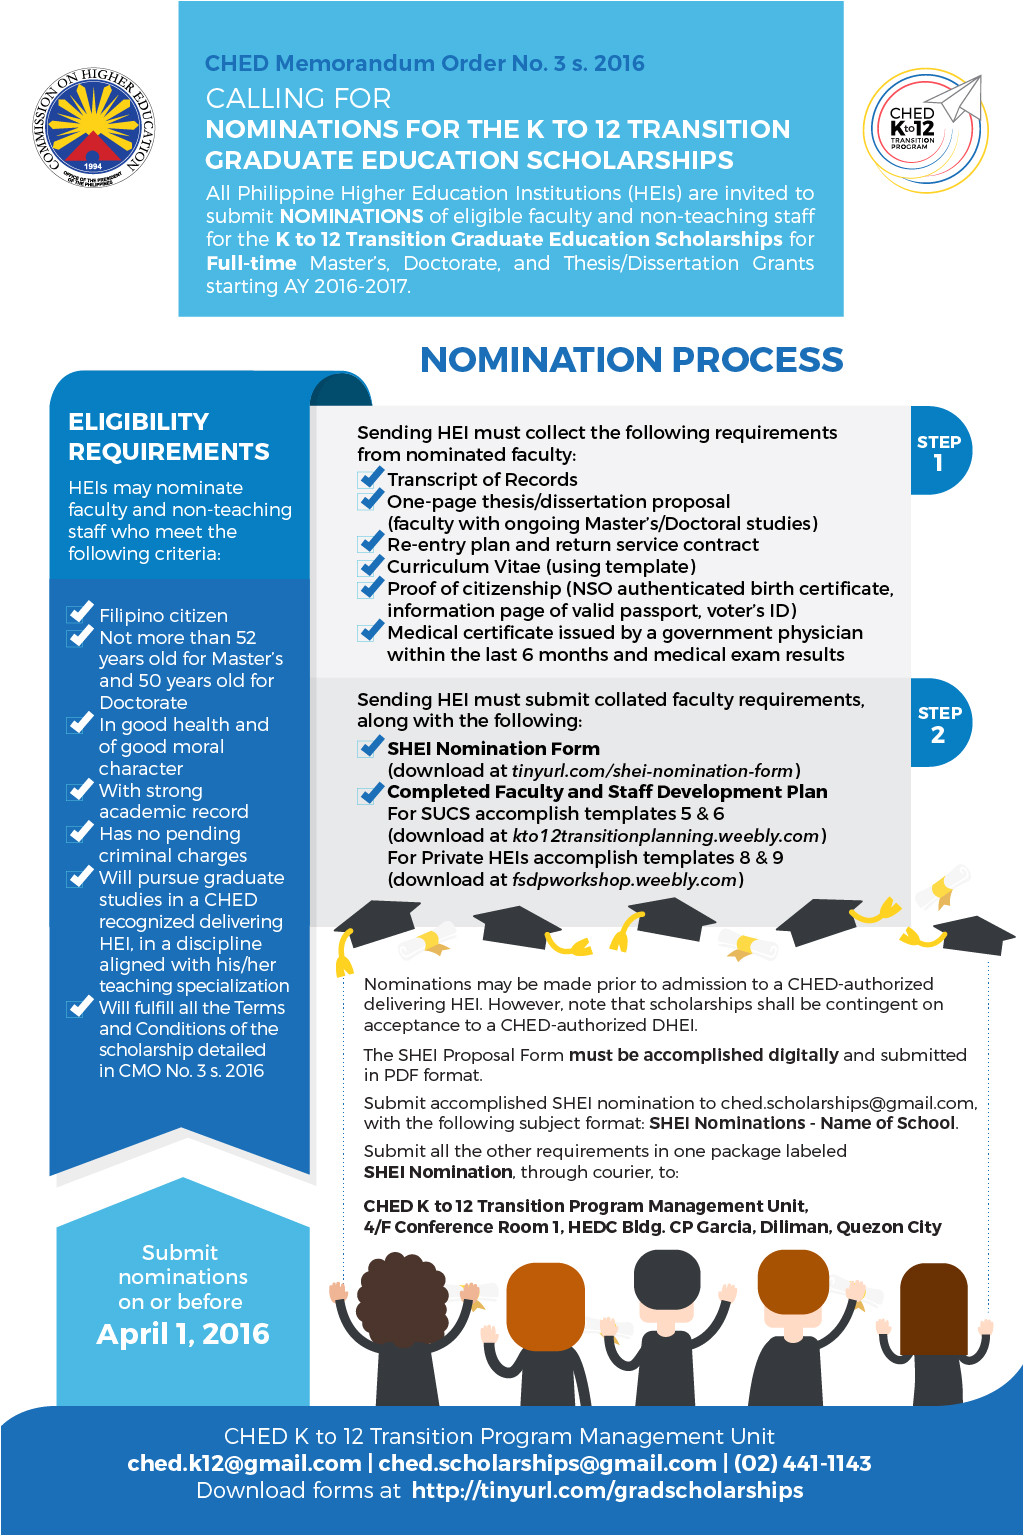 ched scholarship masteral doctoral how to apply what are the requirements to comply